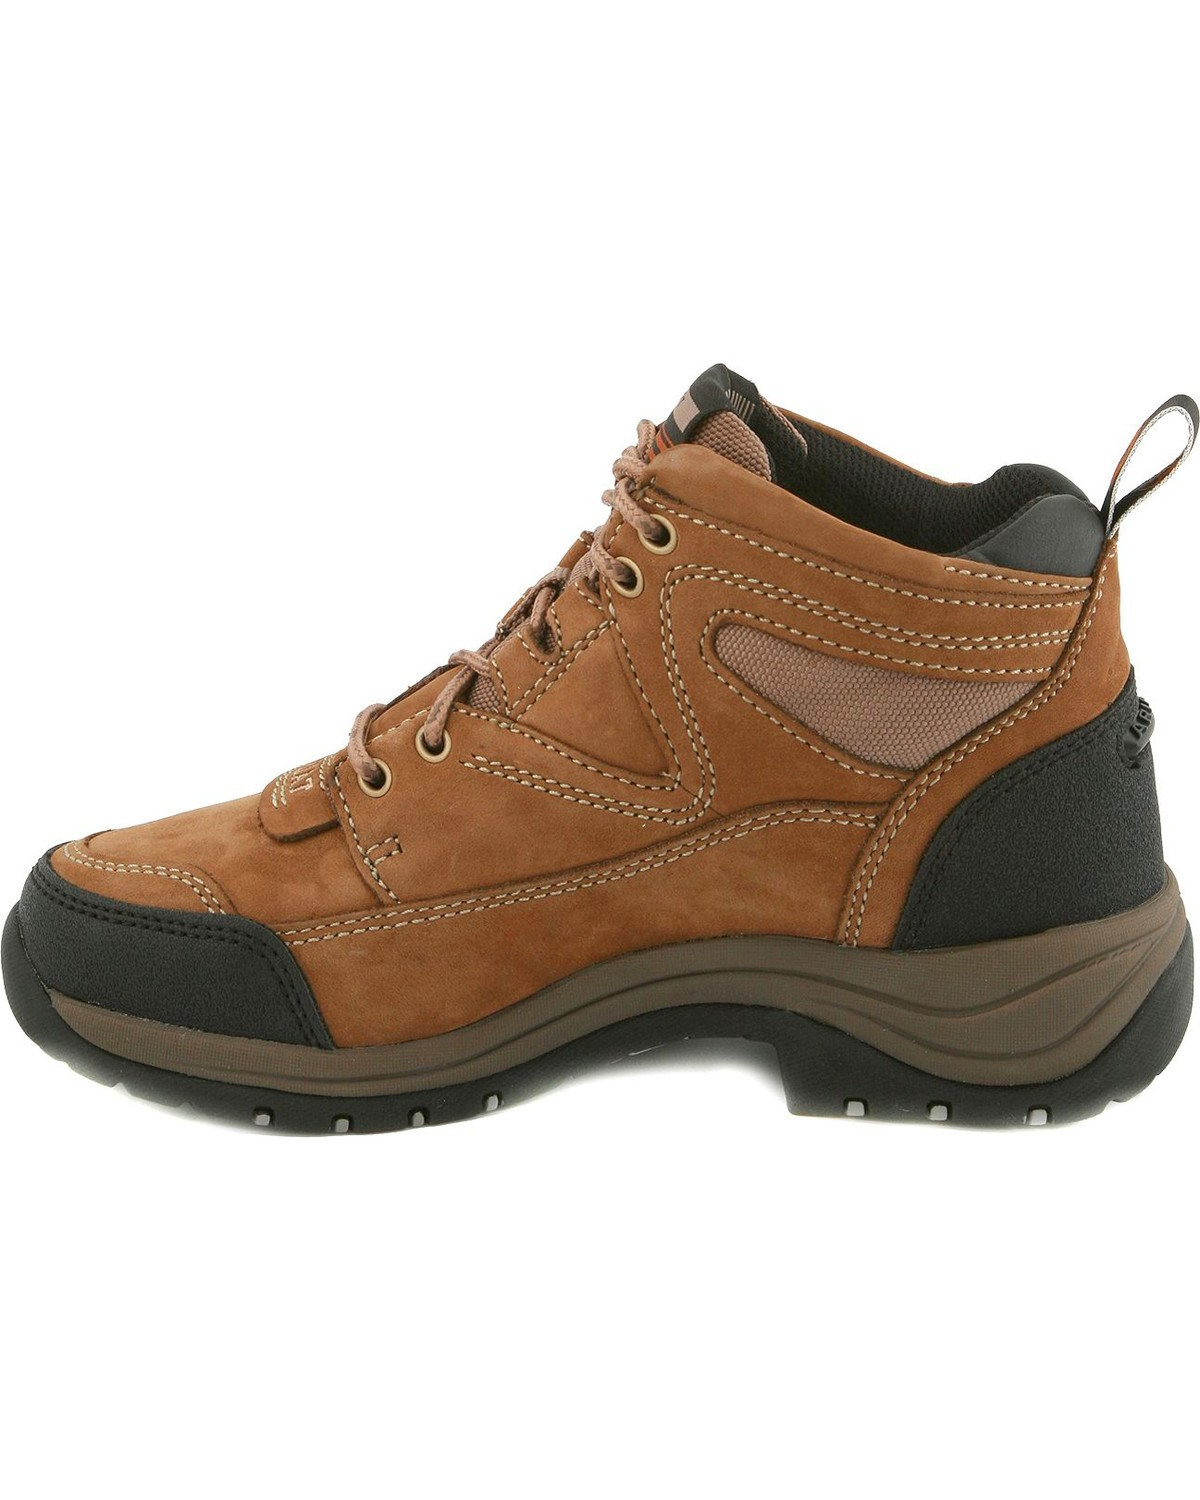 Ariat Women's Terrain Hiking Boots | Sheplers